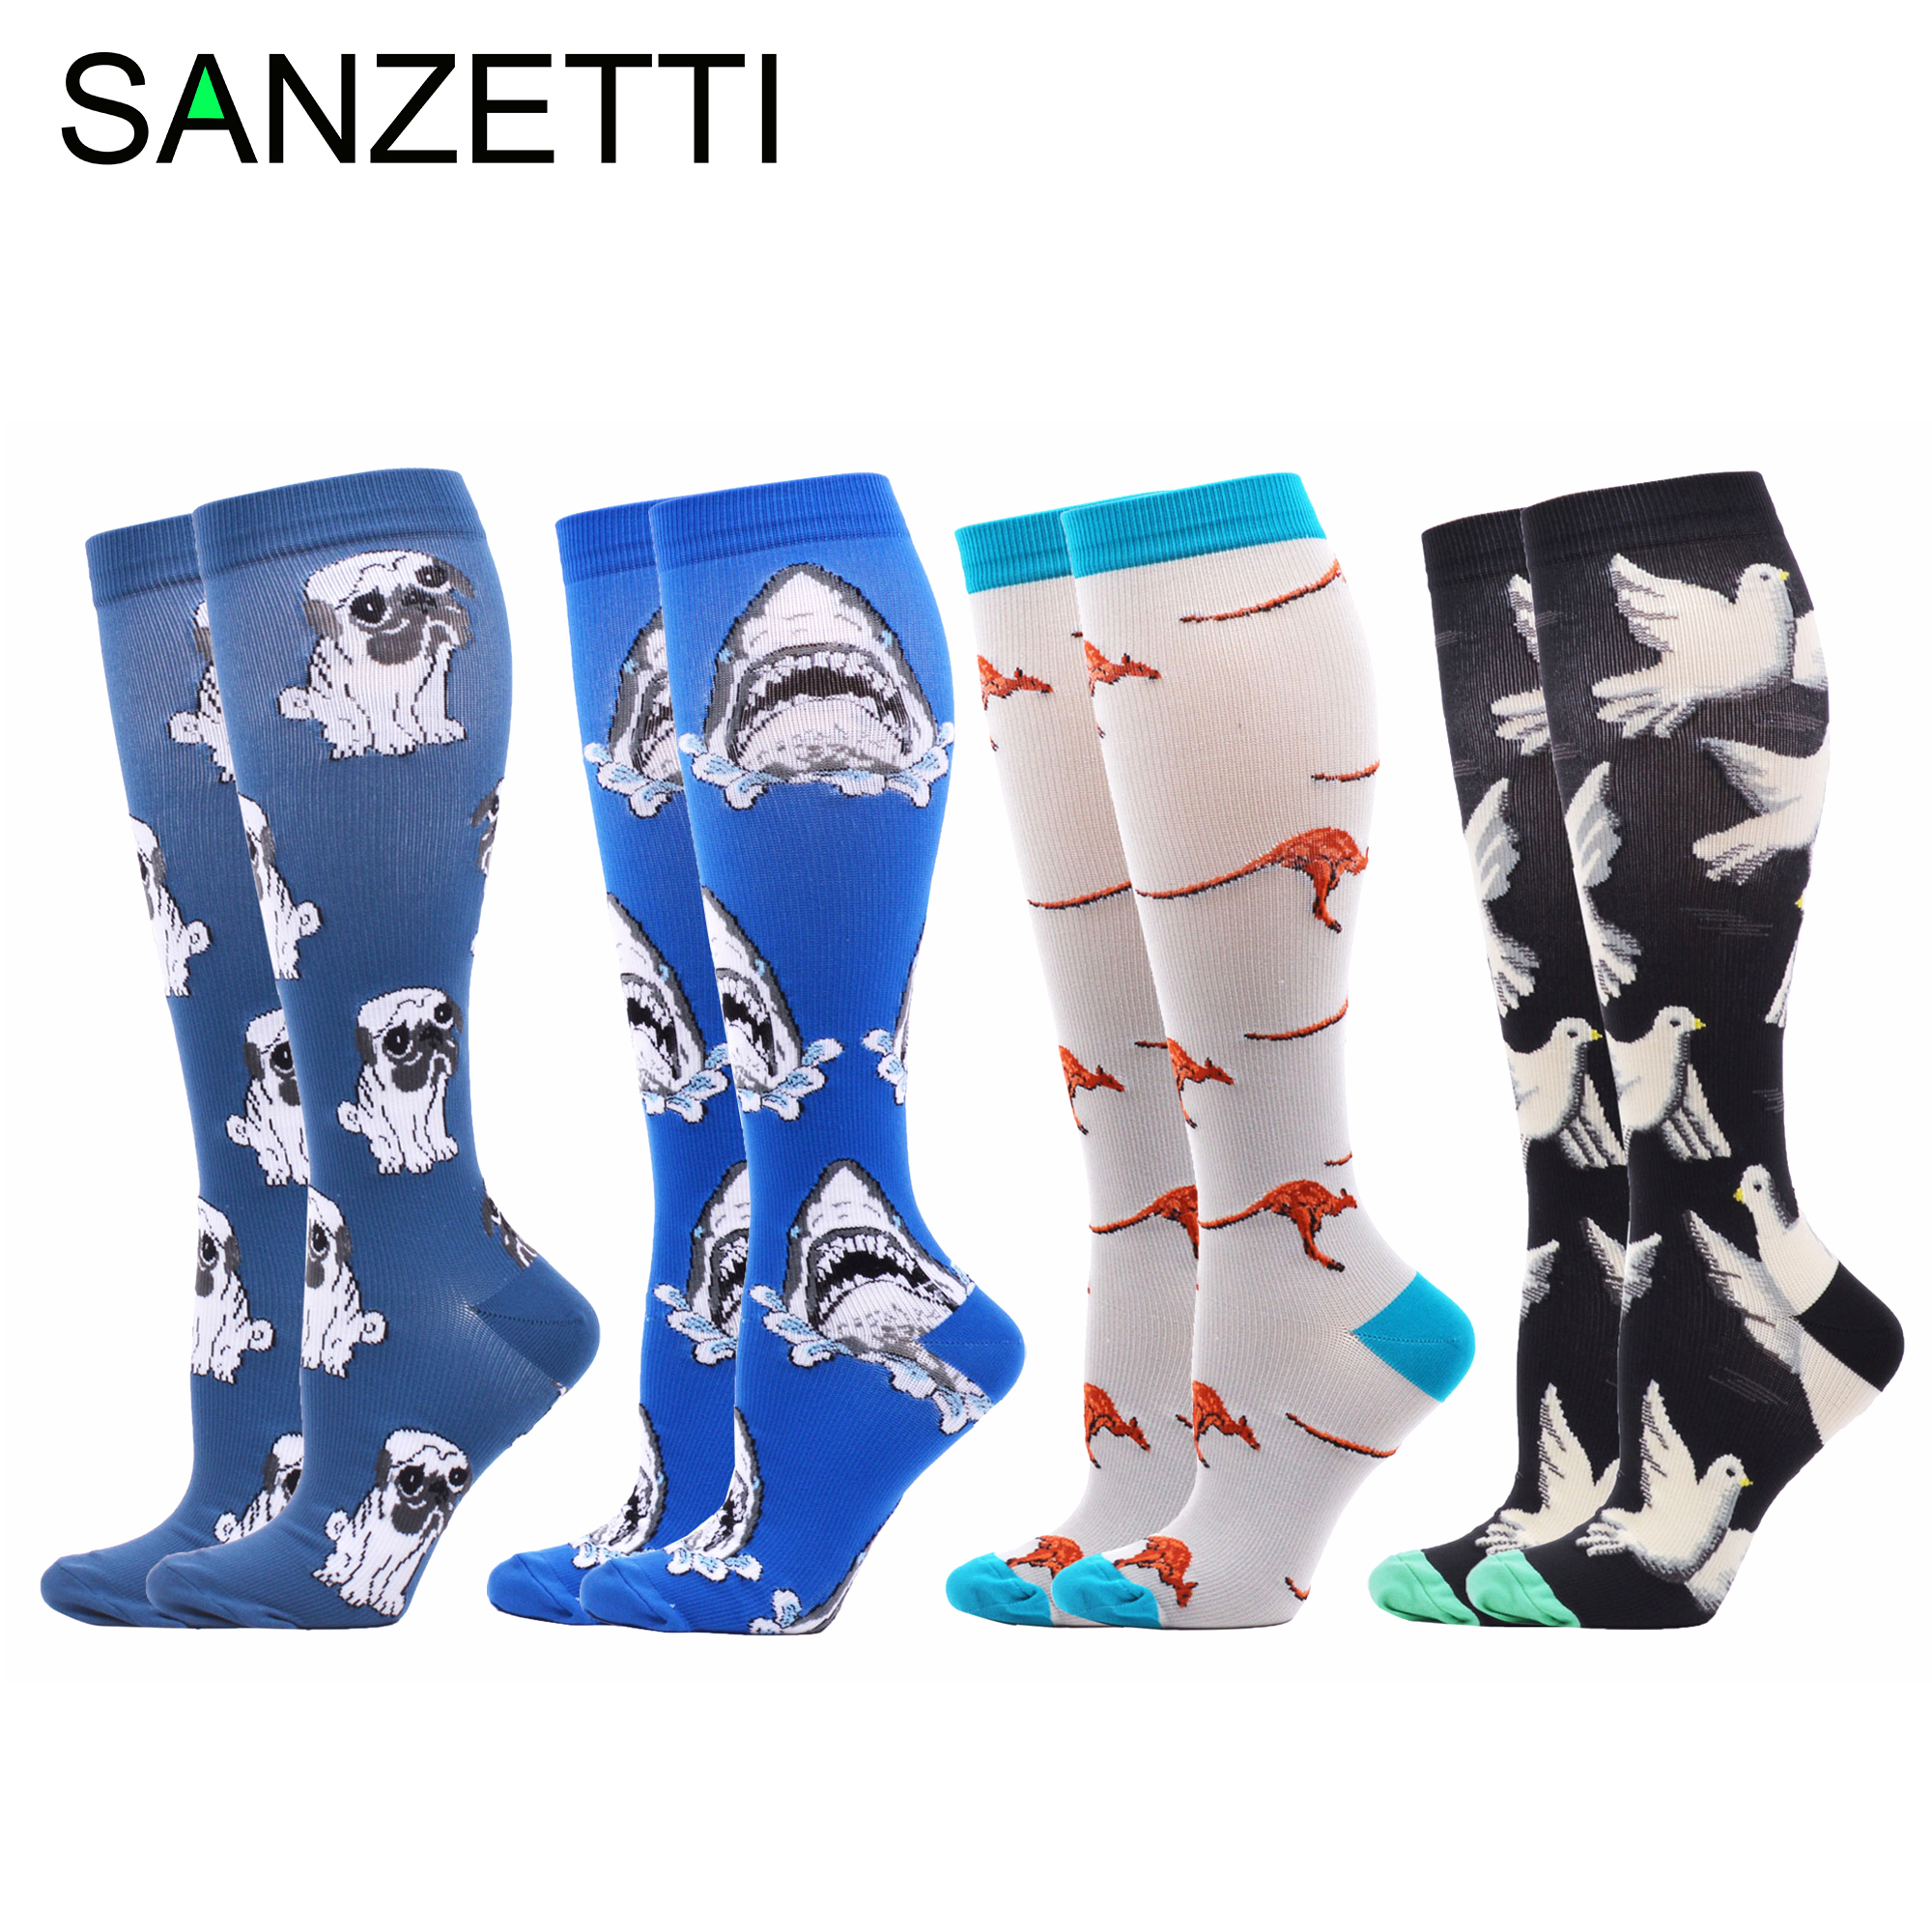 SANZETTI 4 Pairs Hot Women Dog Shark Animal Striped Combed Cotton Compression Socks Below Knee Anti-Fatigue Long Colorful Socks